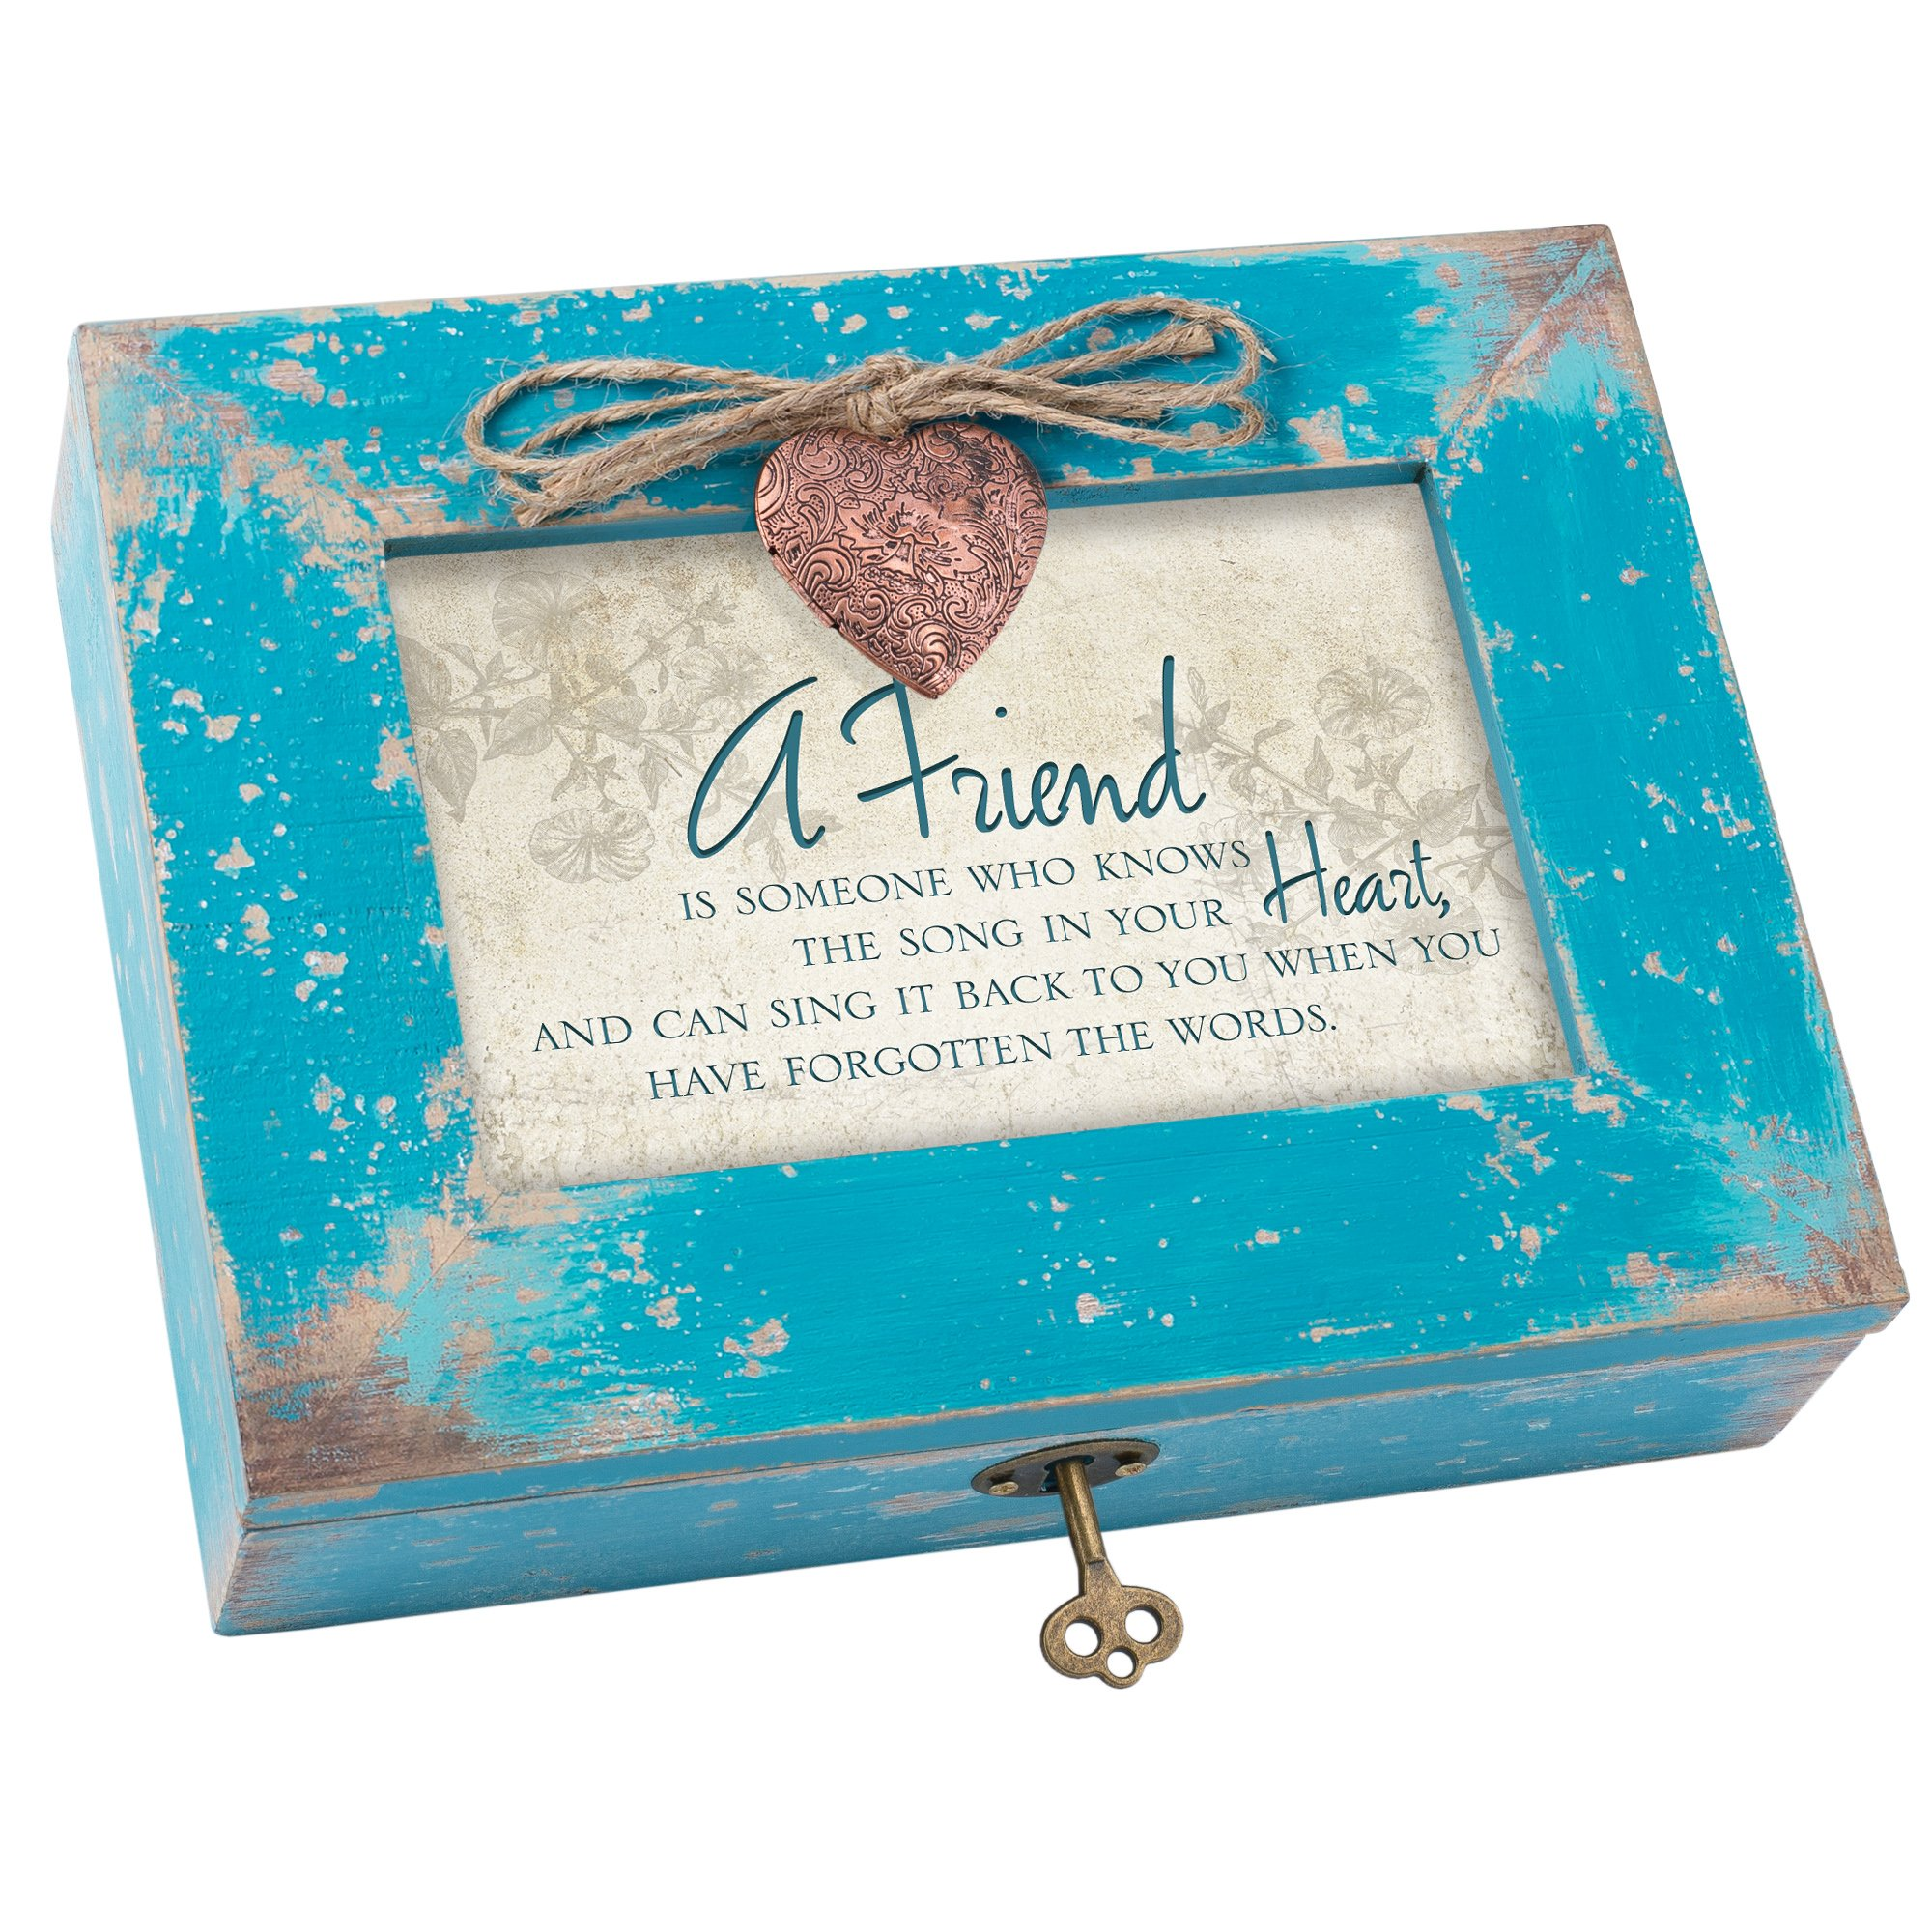 A Friend Knows Your Heart Teal Wood Locket Jewelry Music Box Plays Tune That's What Friends are for